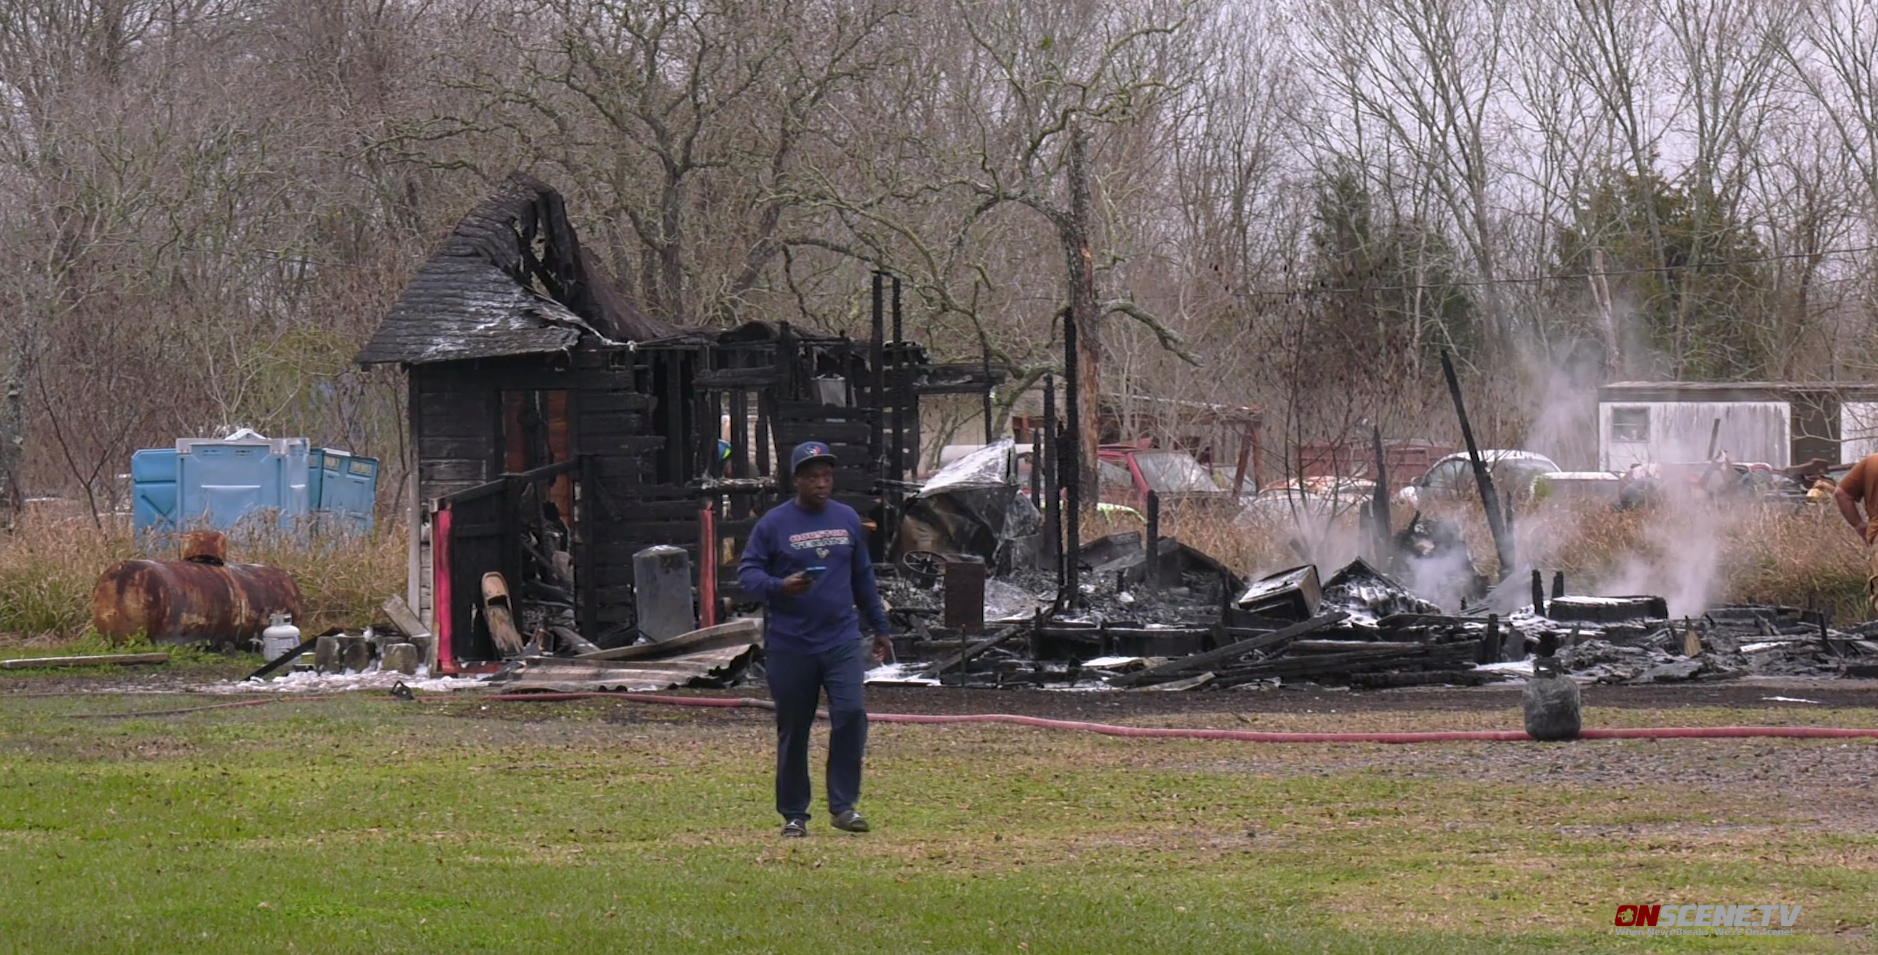 'It's a family': Worshipers aim to rebuild after fire destroys 100-year-old Rosharon church